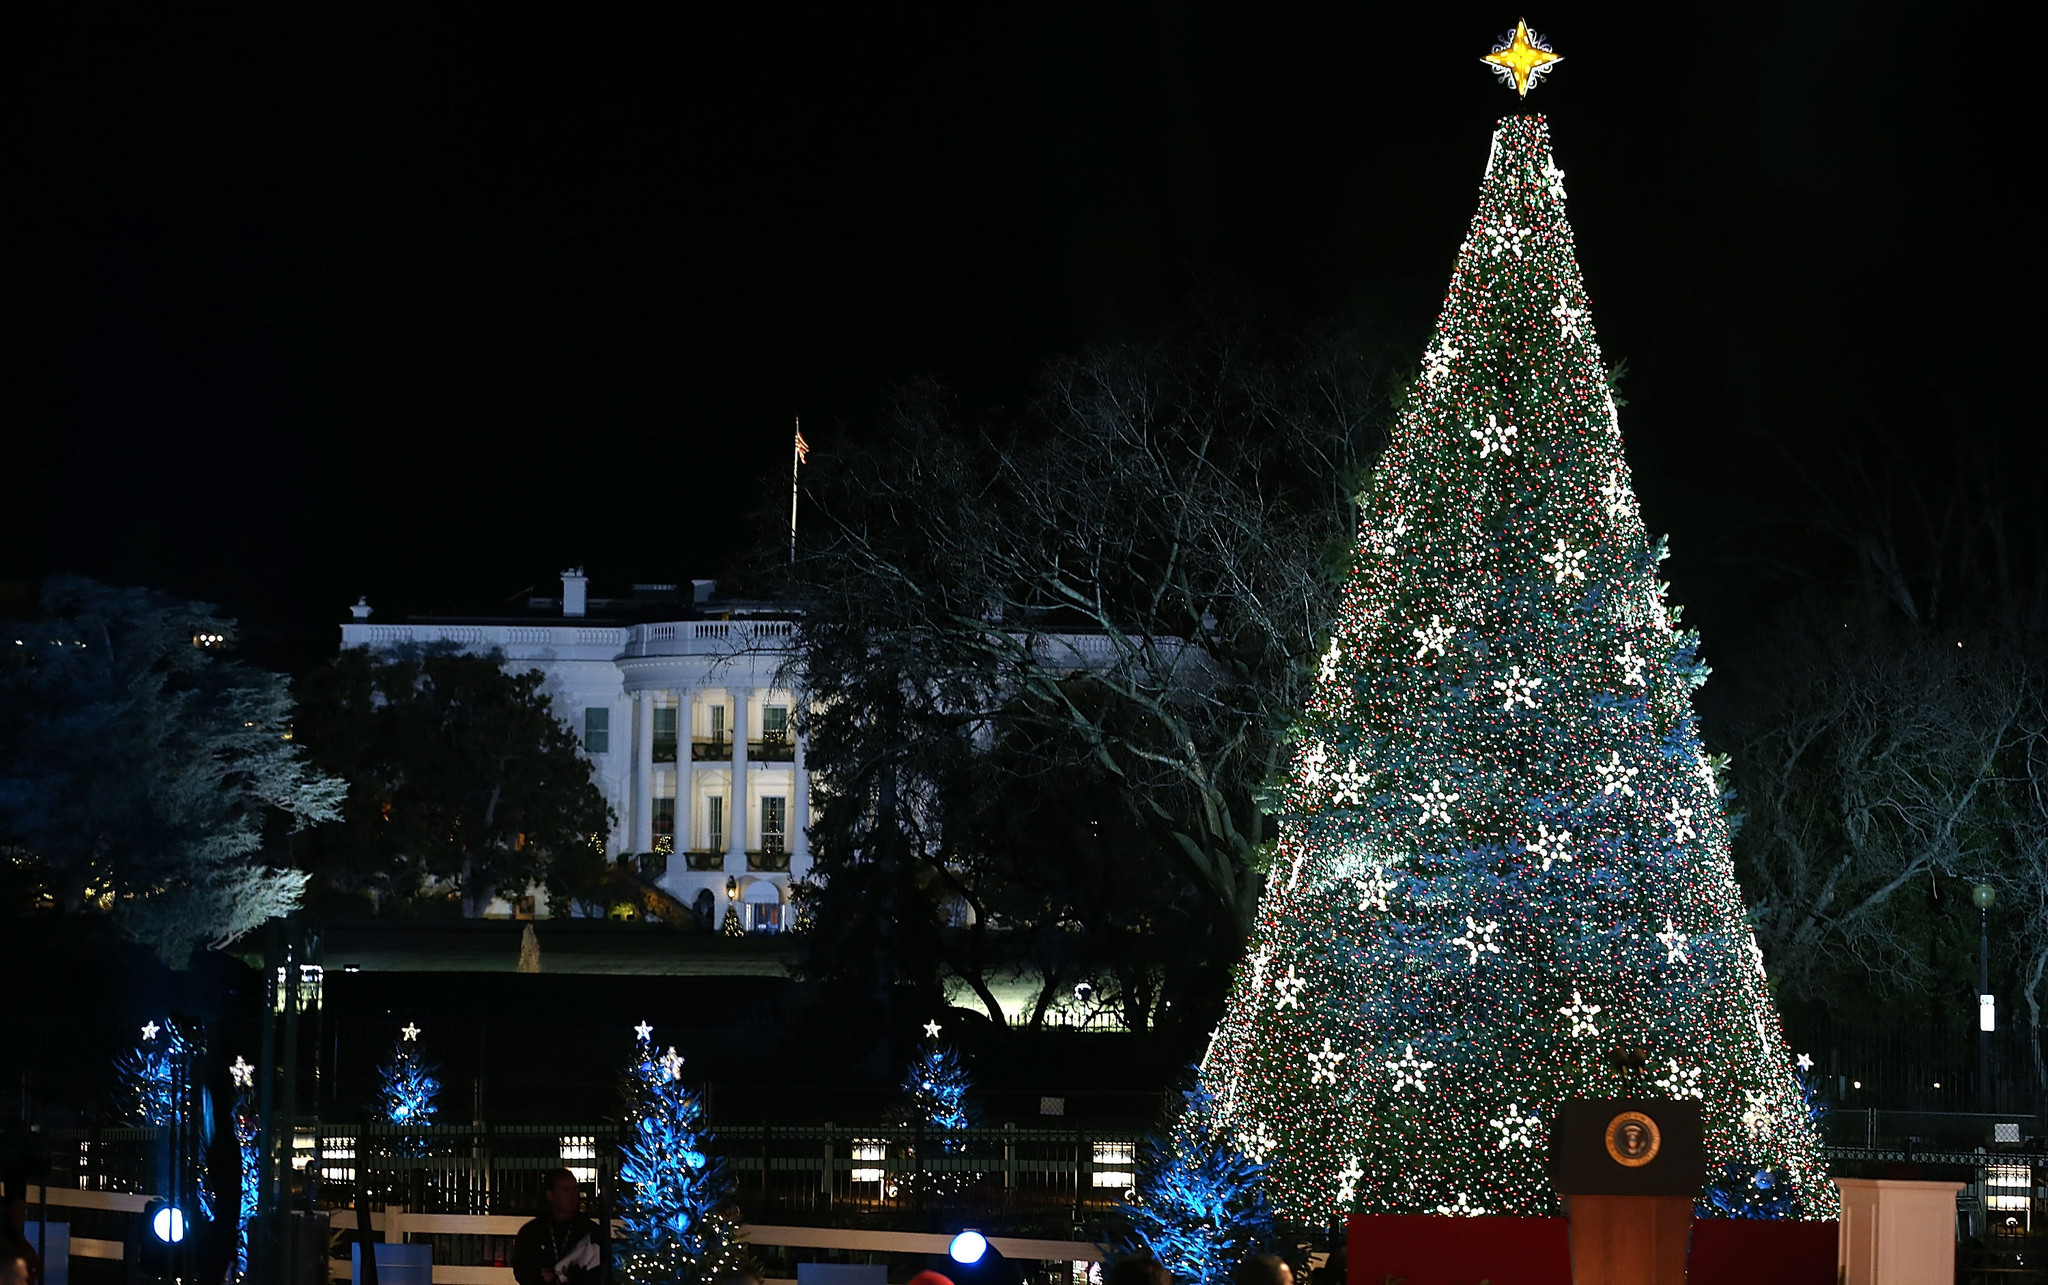 Pictures: Holiday lights from around the globe - Christmas in Washington, D.C. -- National Christmas Tree Lighting